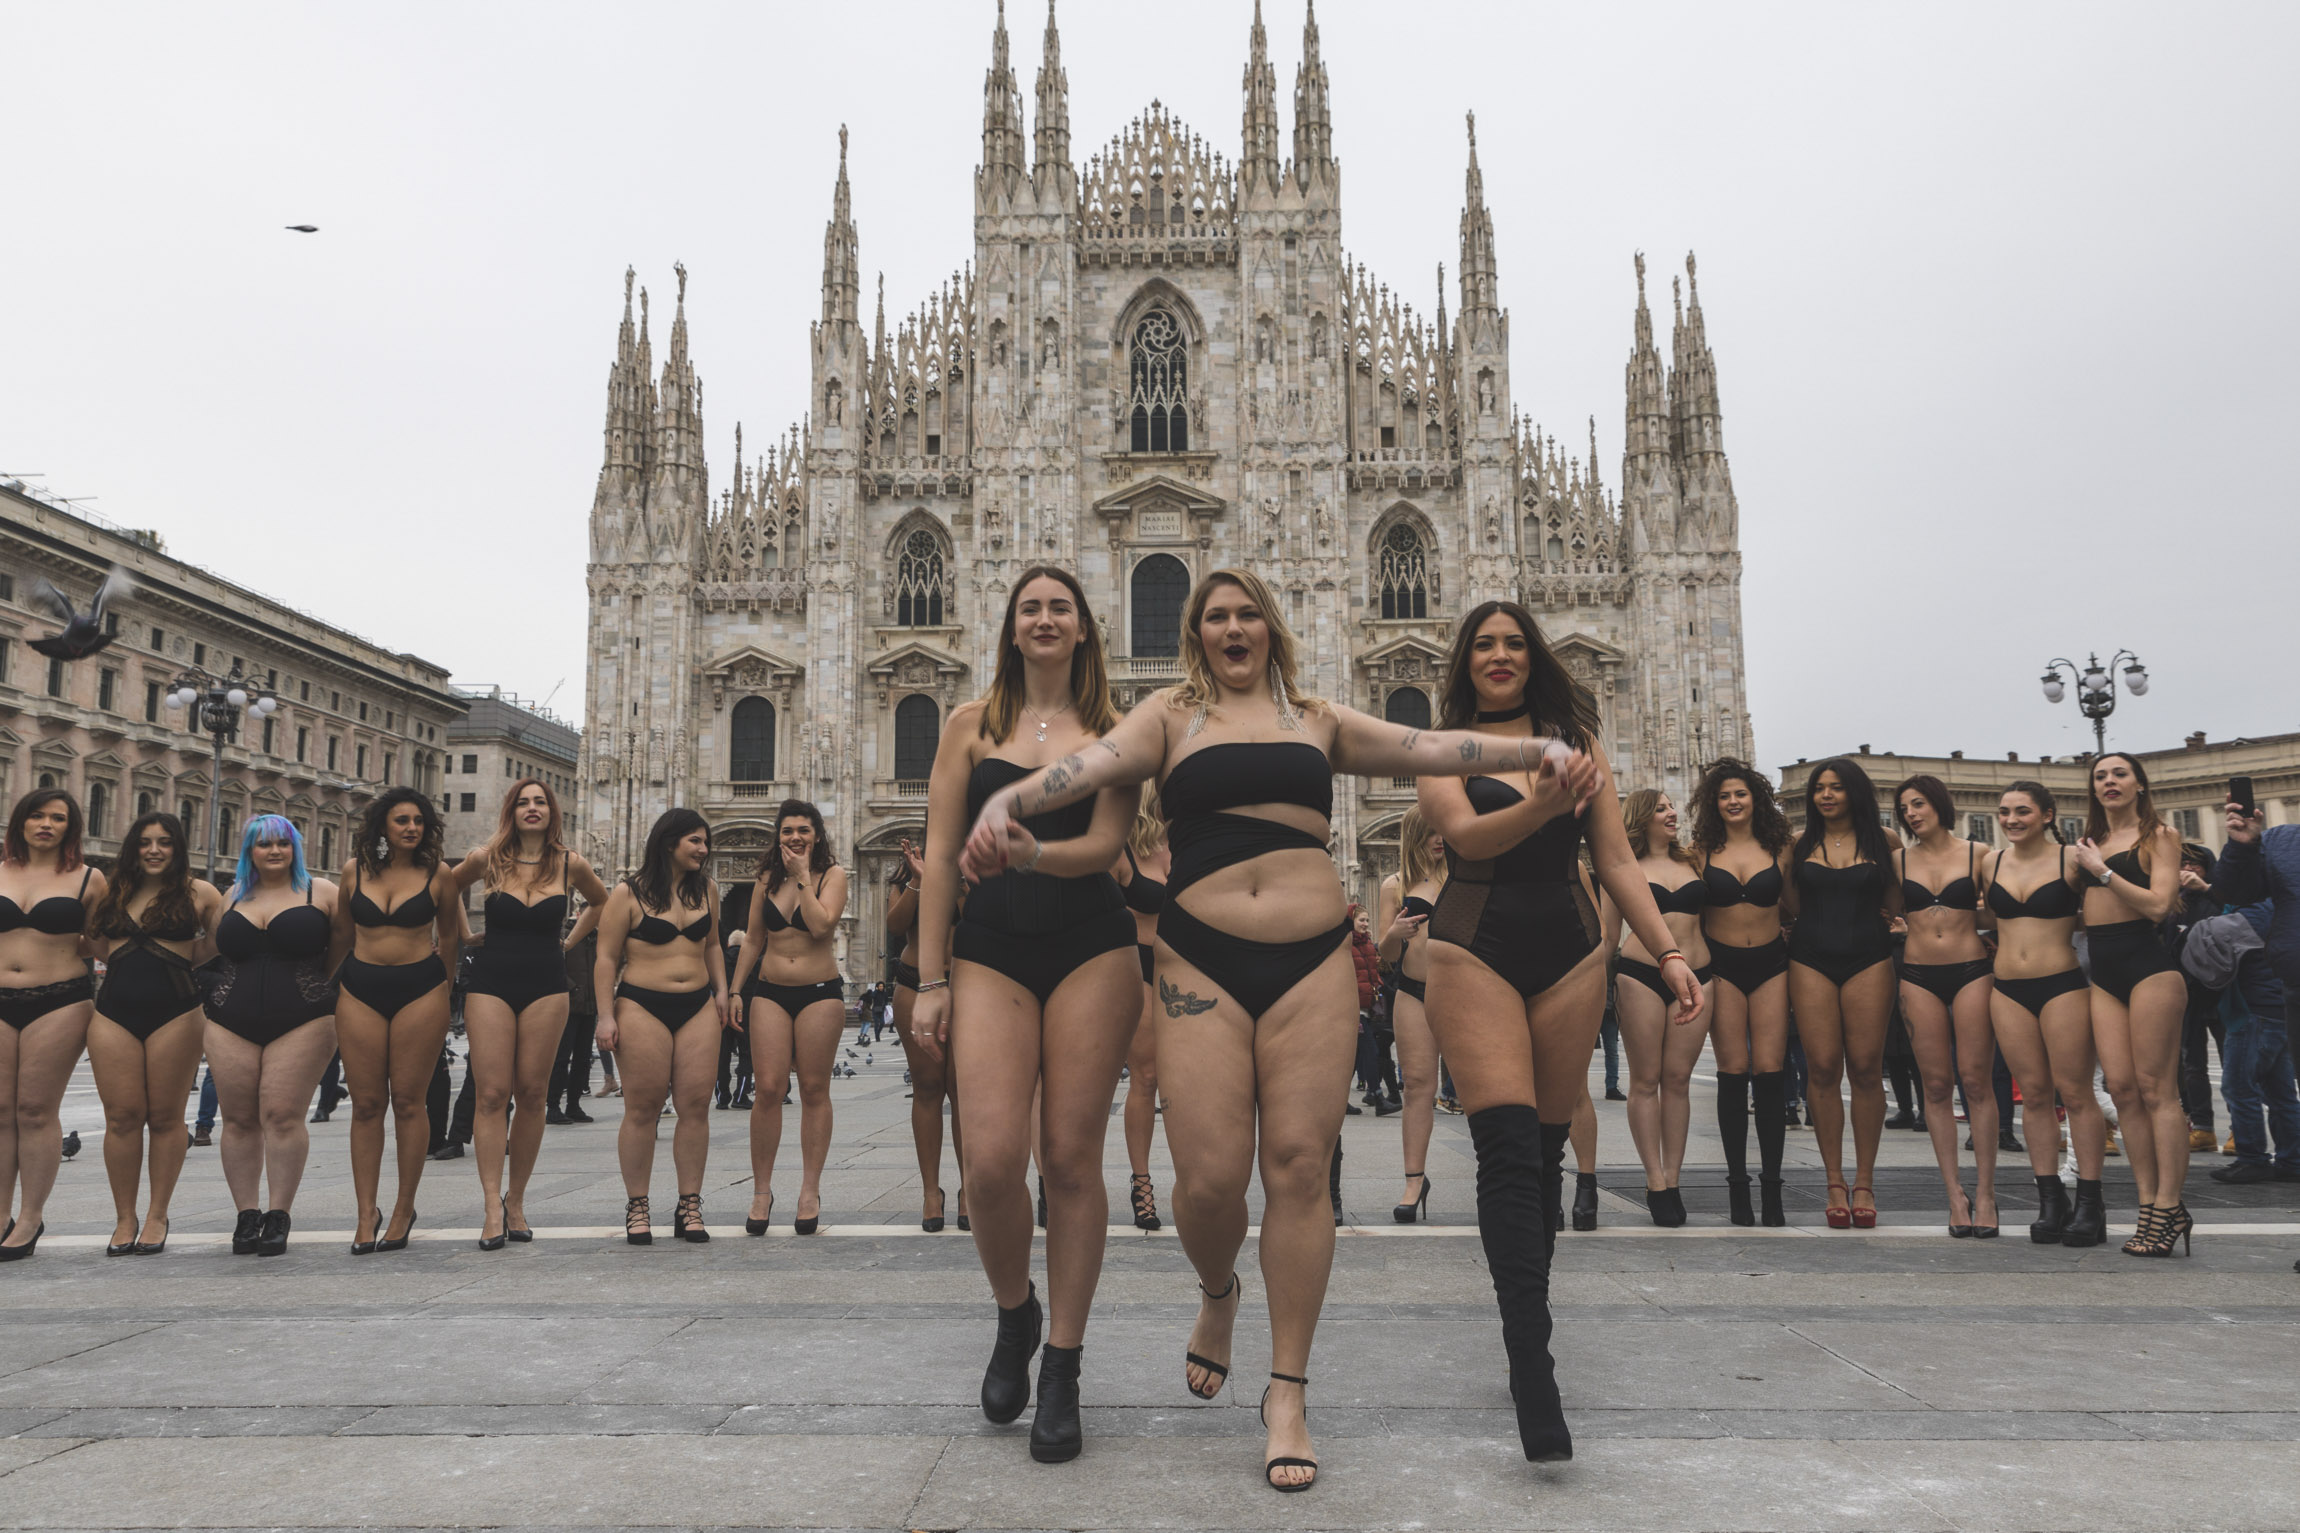 BodyPositiveCatlwalk Milan 2018